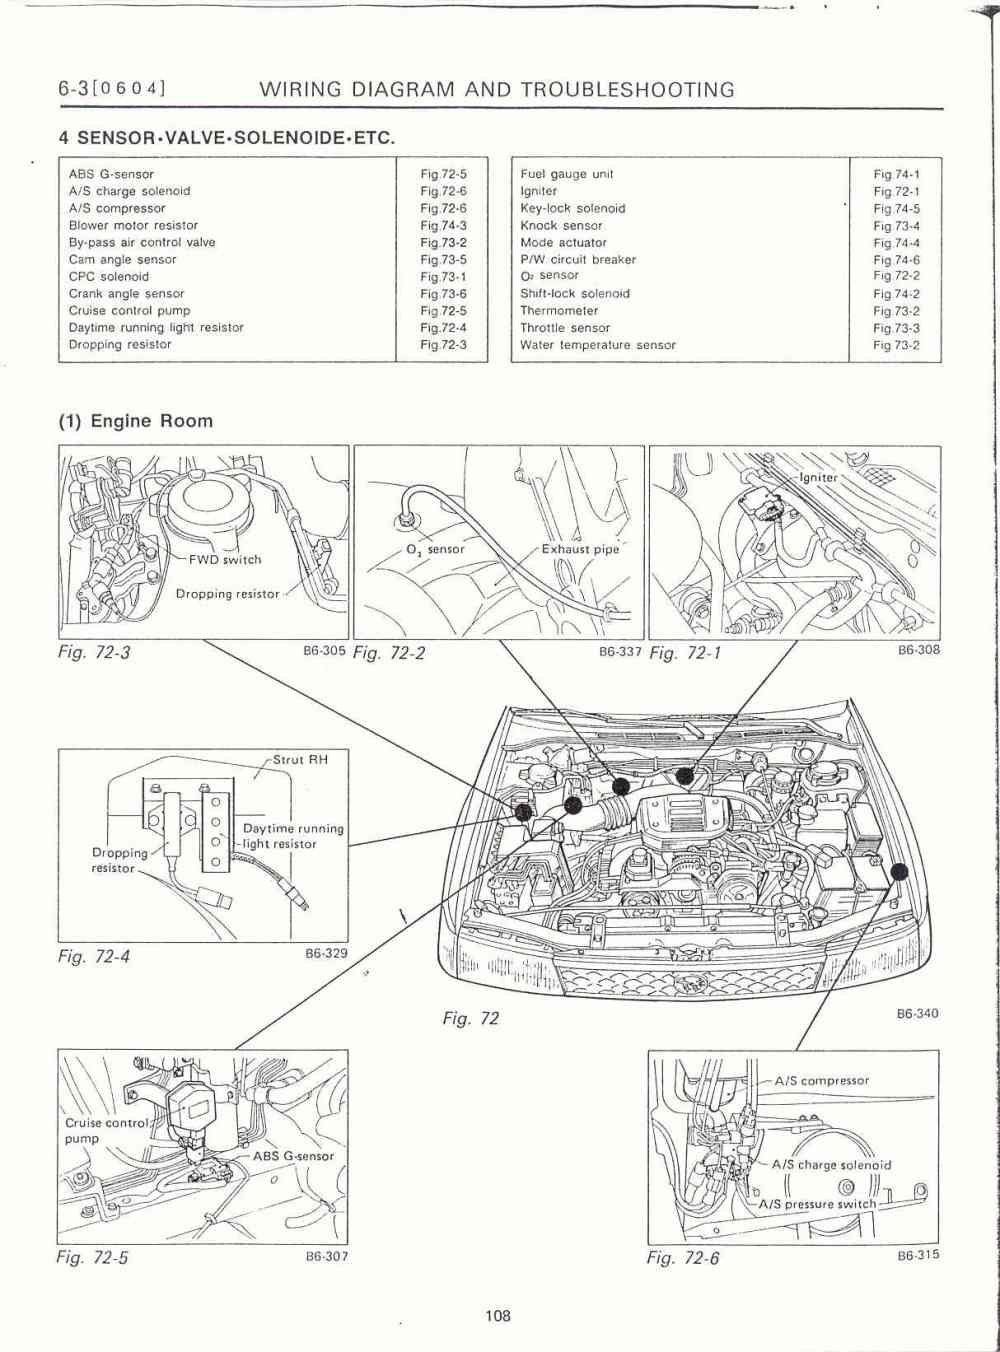 medium resolution of 05 wrx engine diagram wiring library05 wrx engine diagram